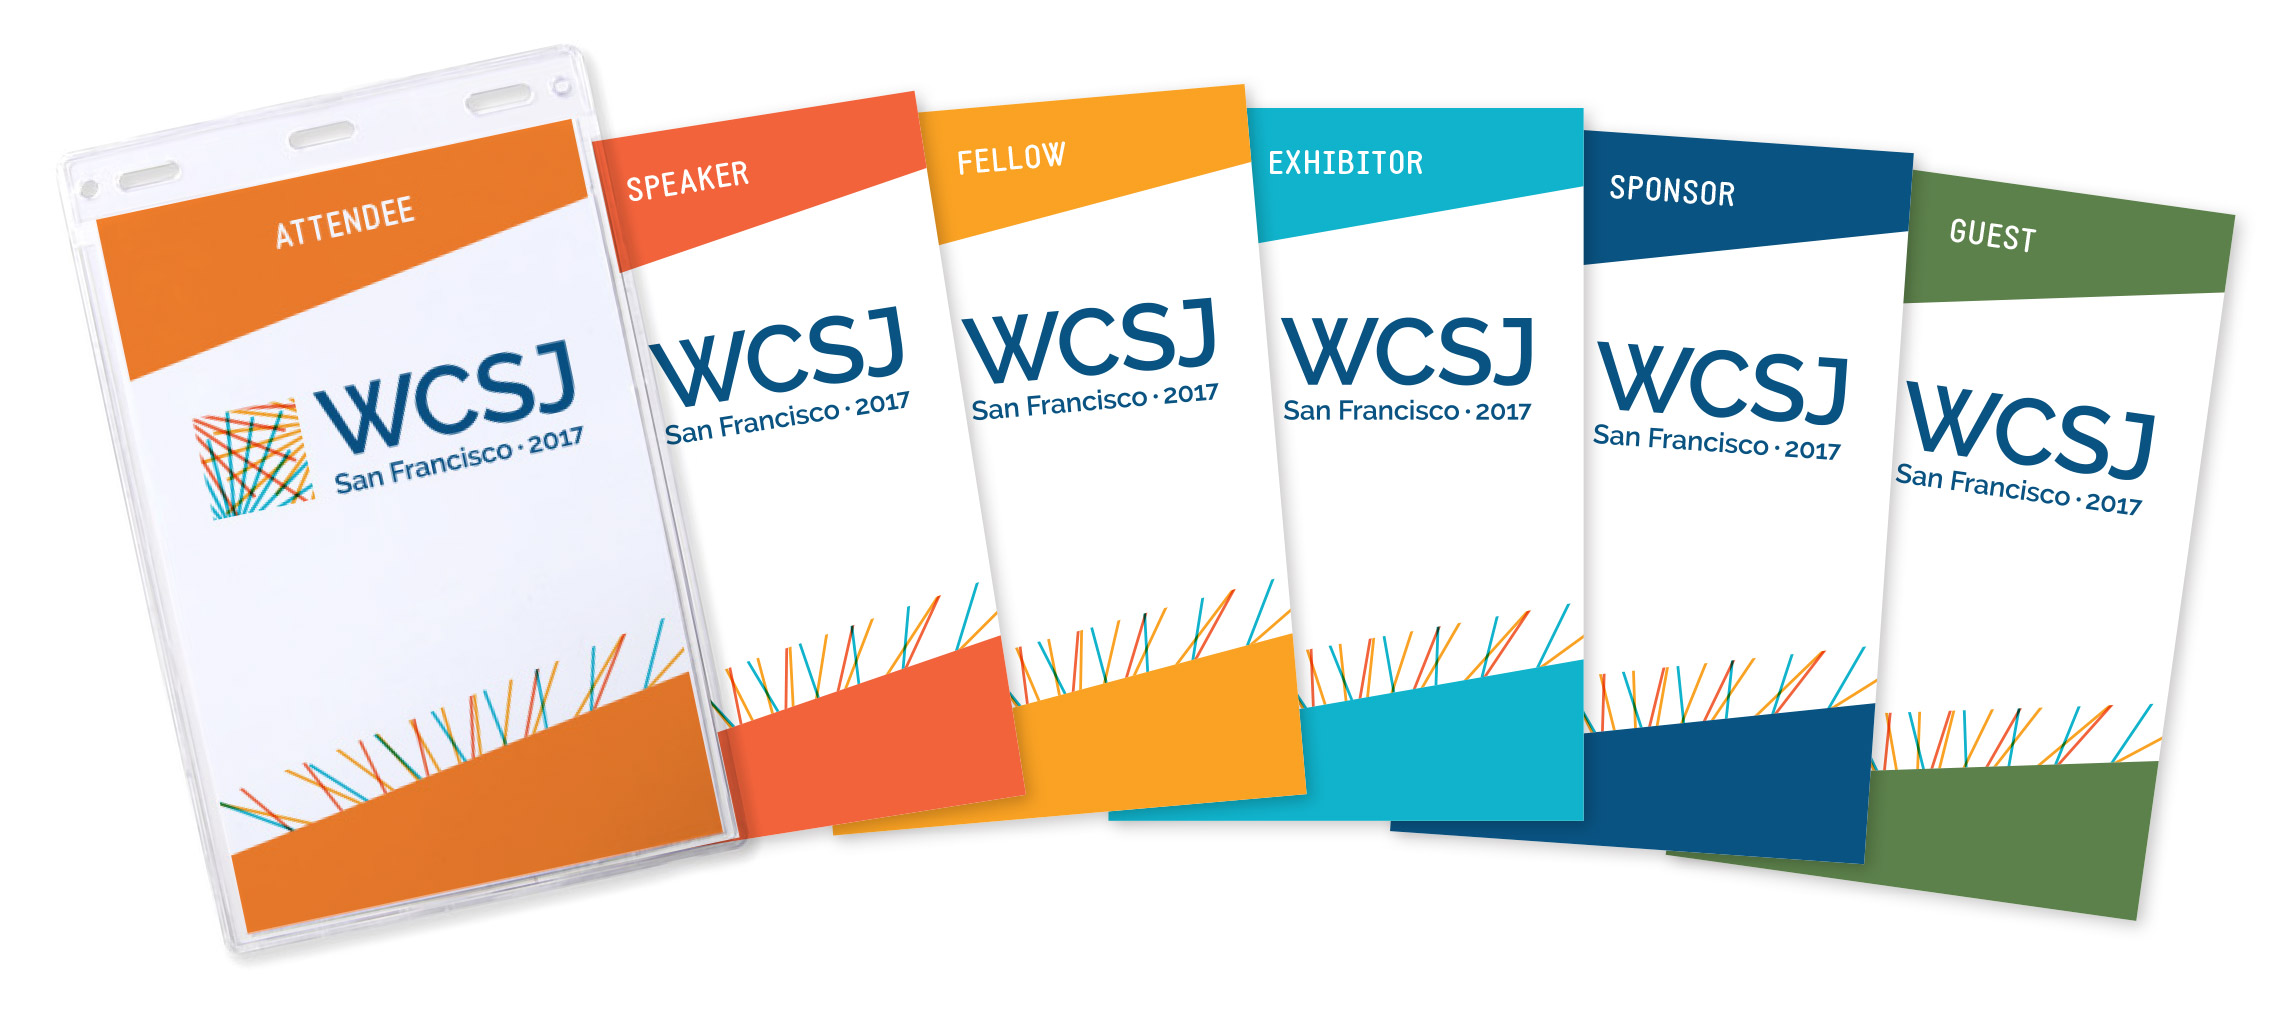 WCSJ_Name_Badges